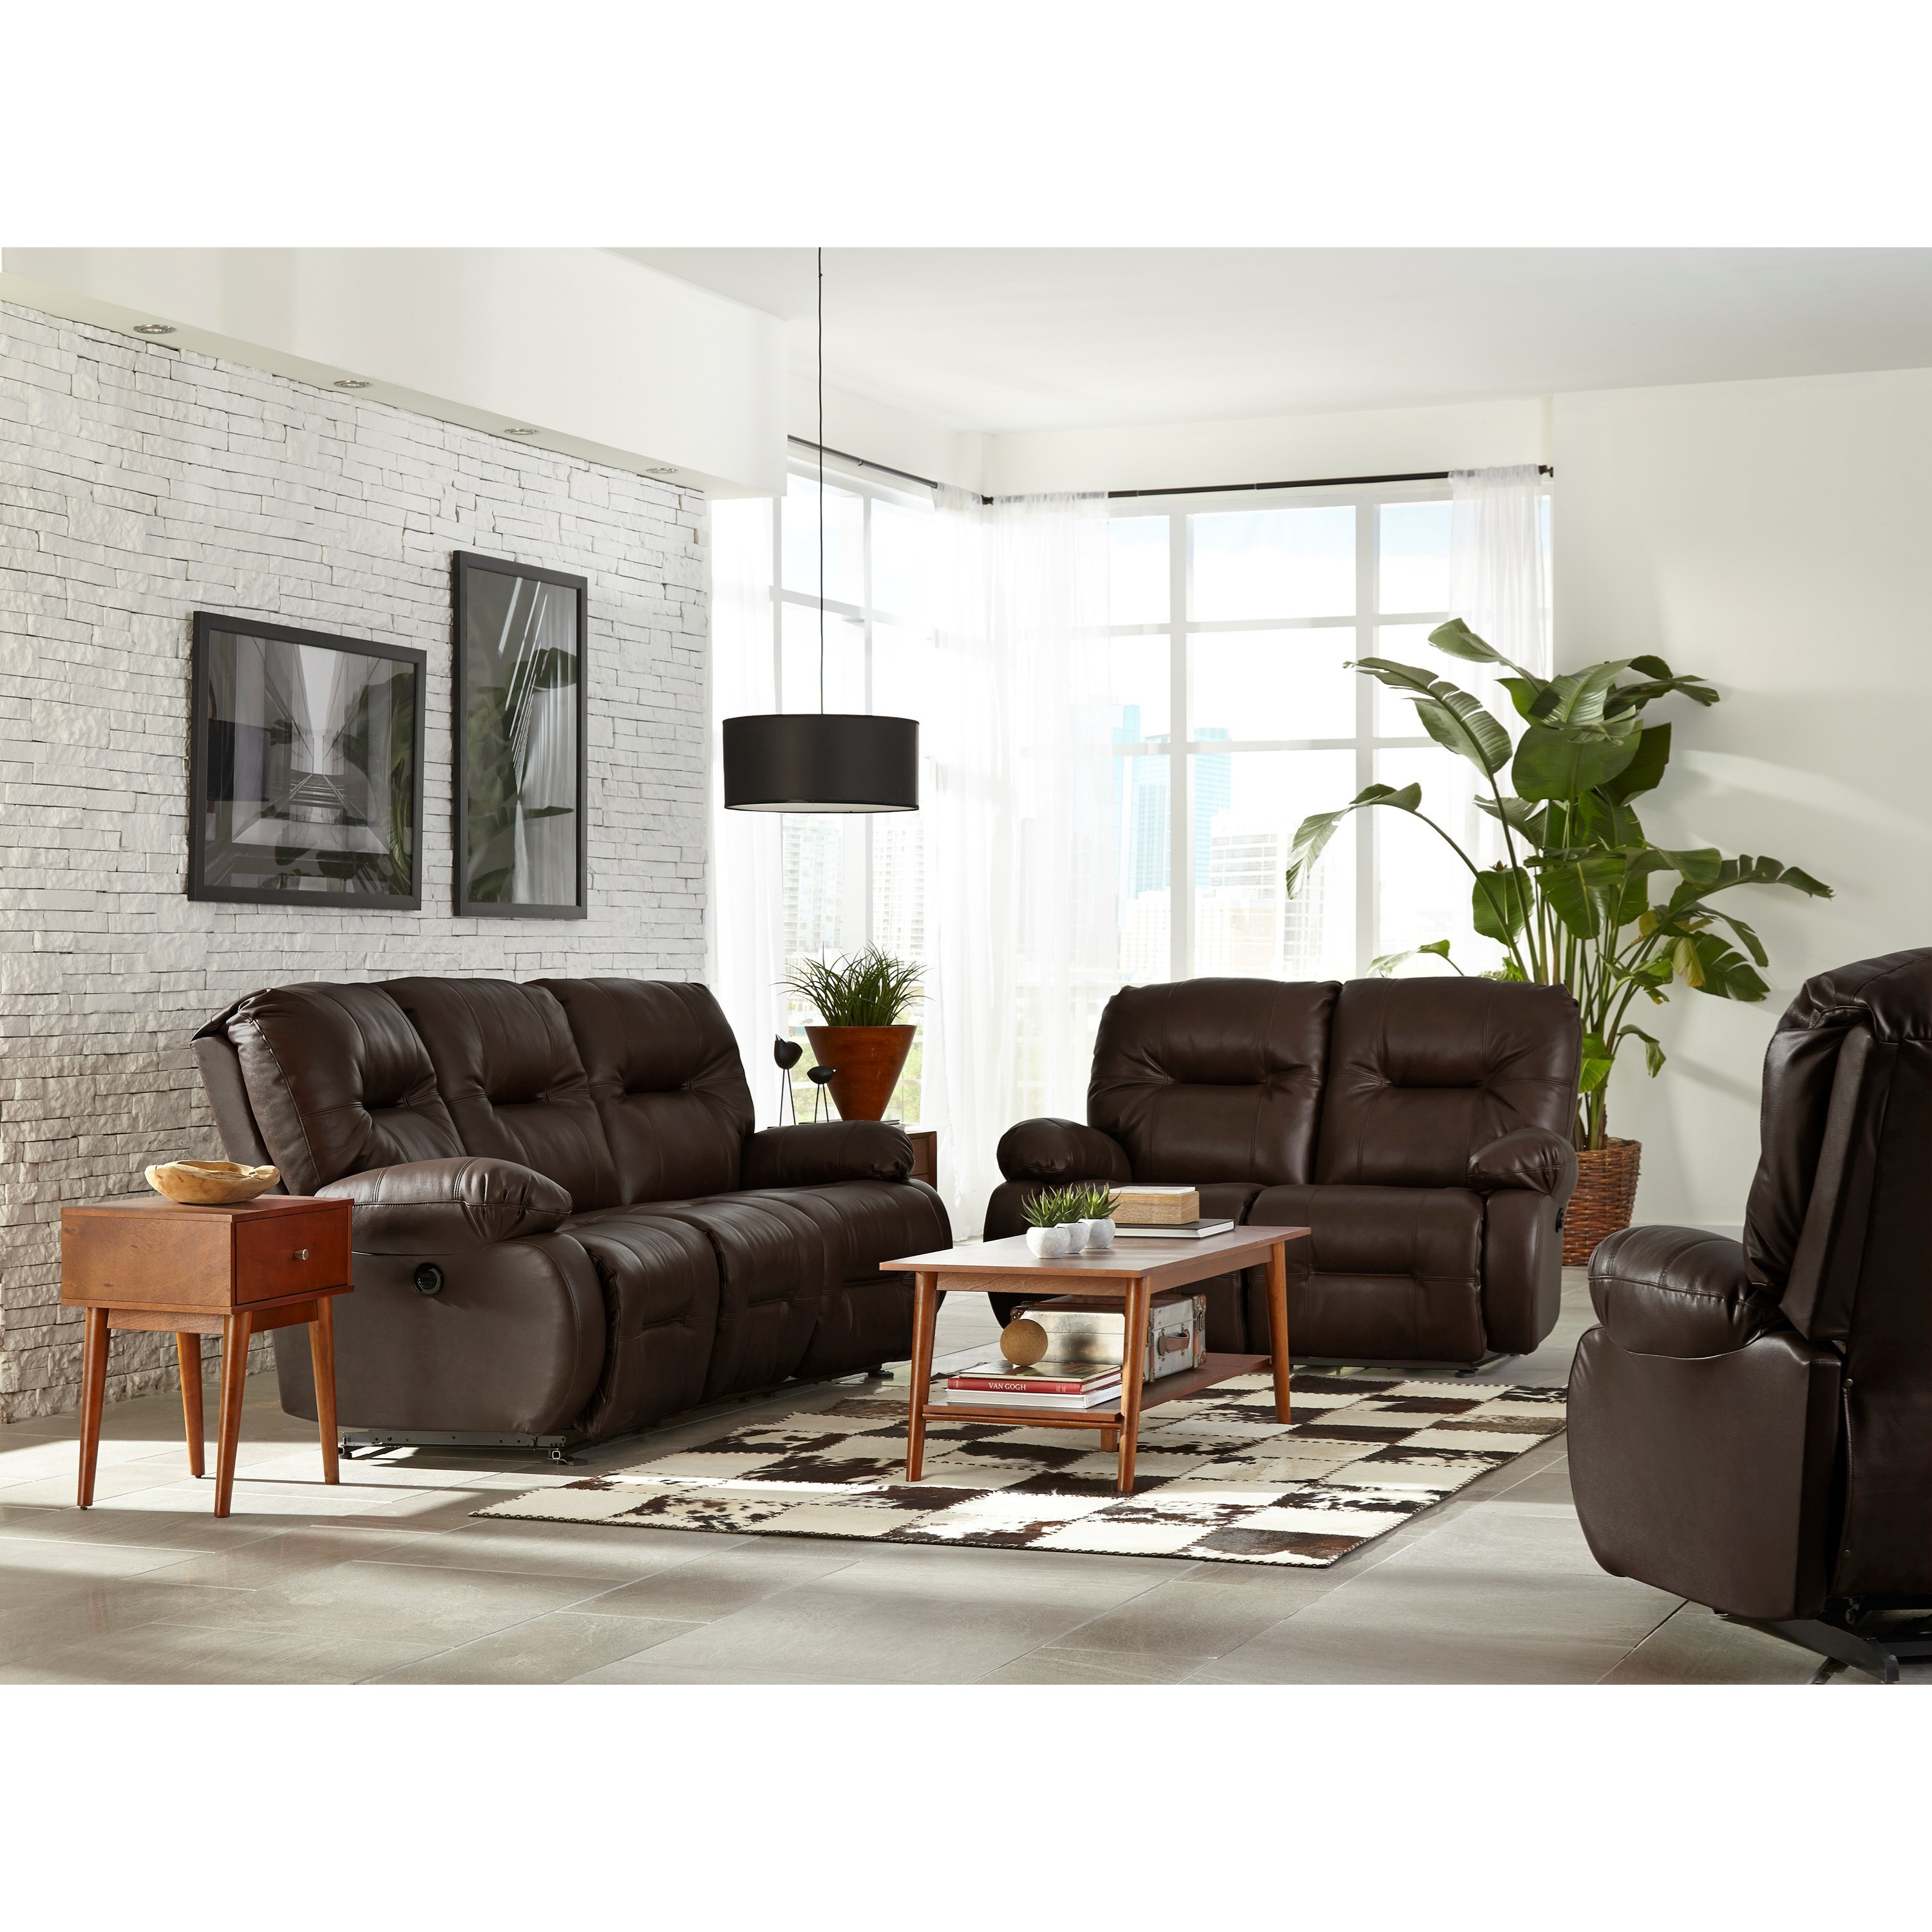 Best Home Furnishings Brinley 2 Brinley Space Saver Power Reclining Loveseat Fashion Furniture